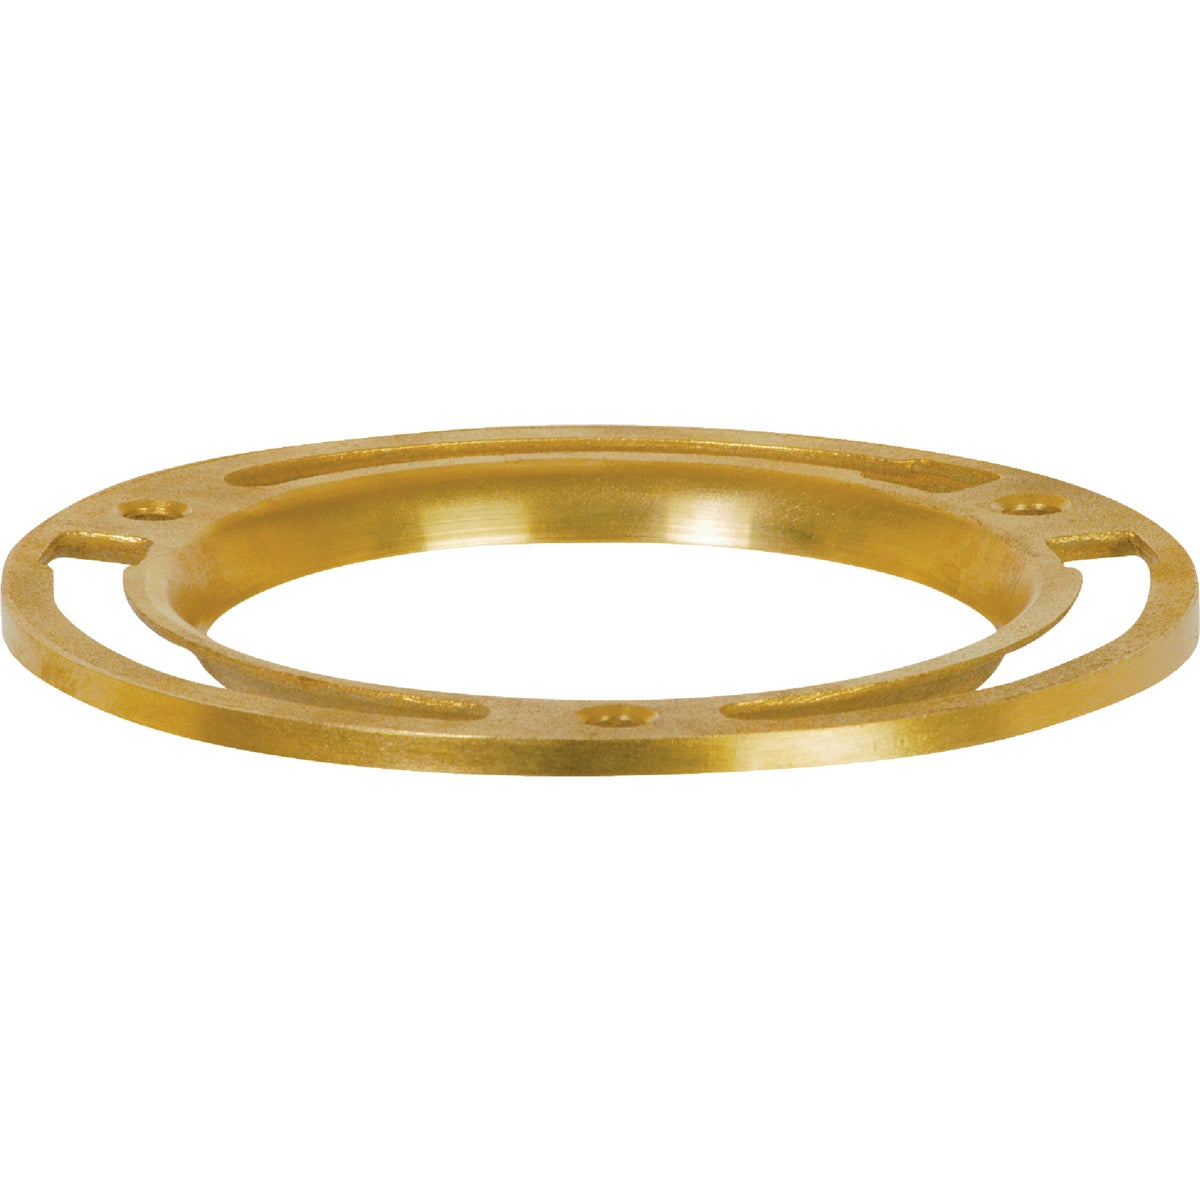 "4"" BRS CLOST FLANGE RING - 890-4BPK by Sioux Chief Mfg"